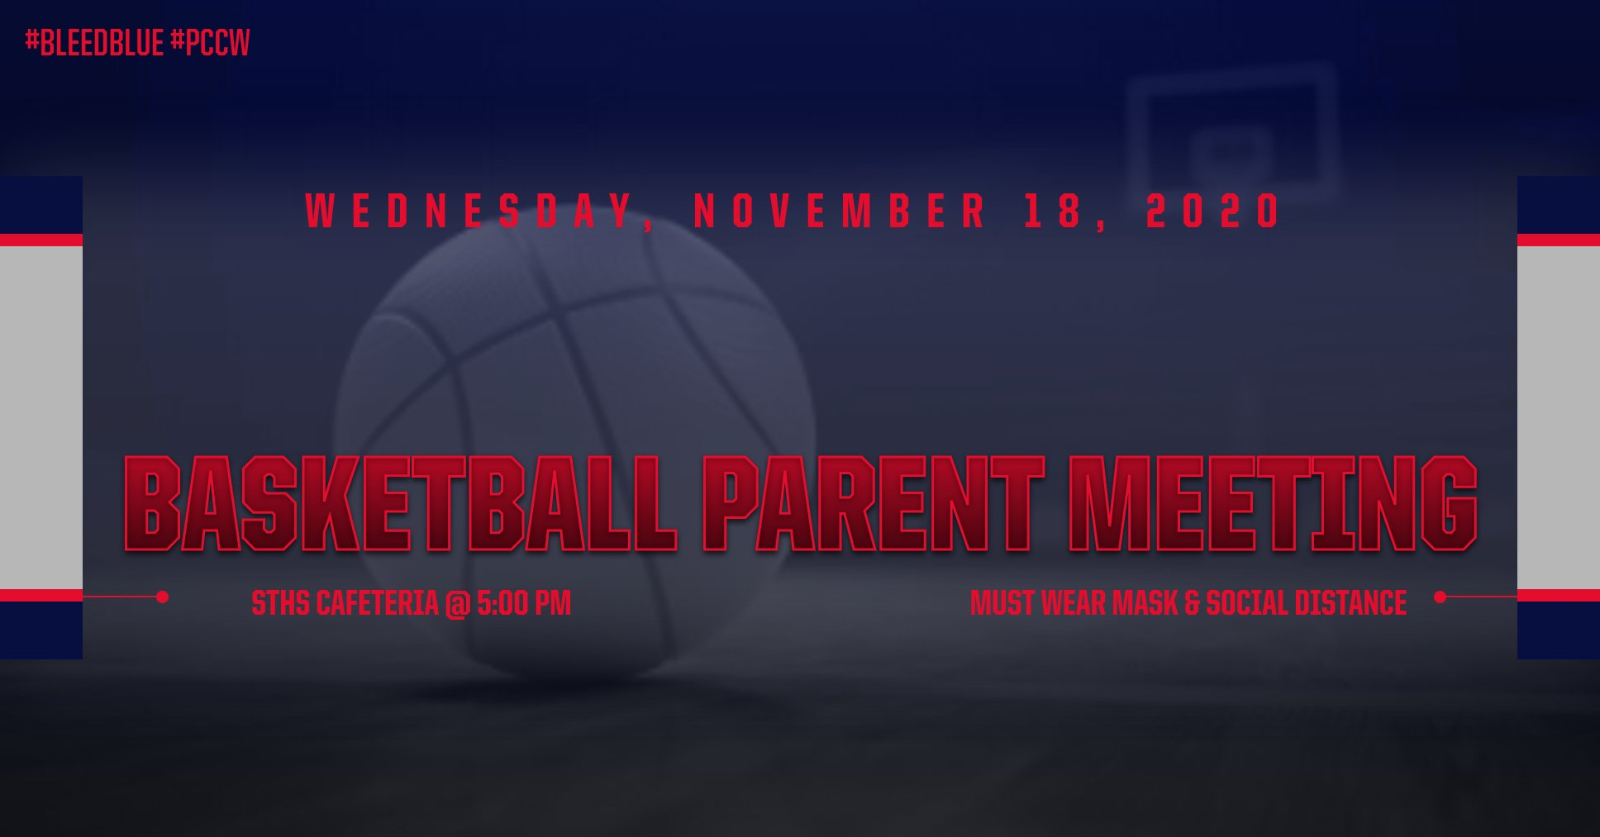 REBELS BASKETBALL PARENT MEETING